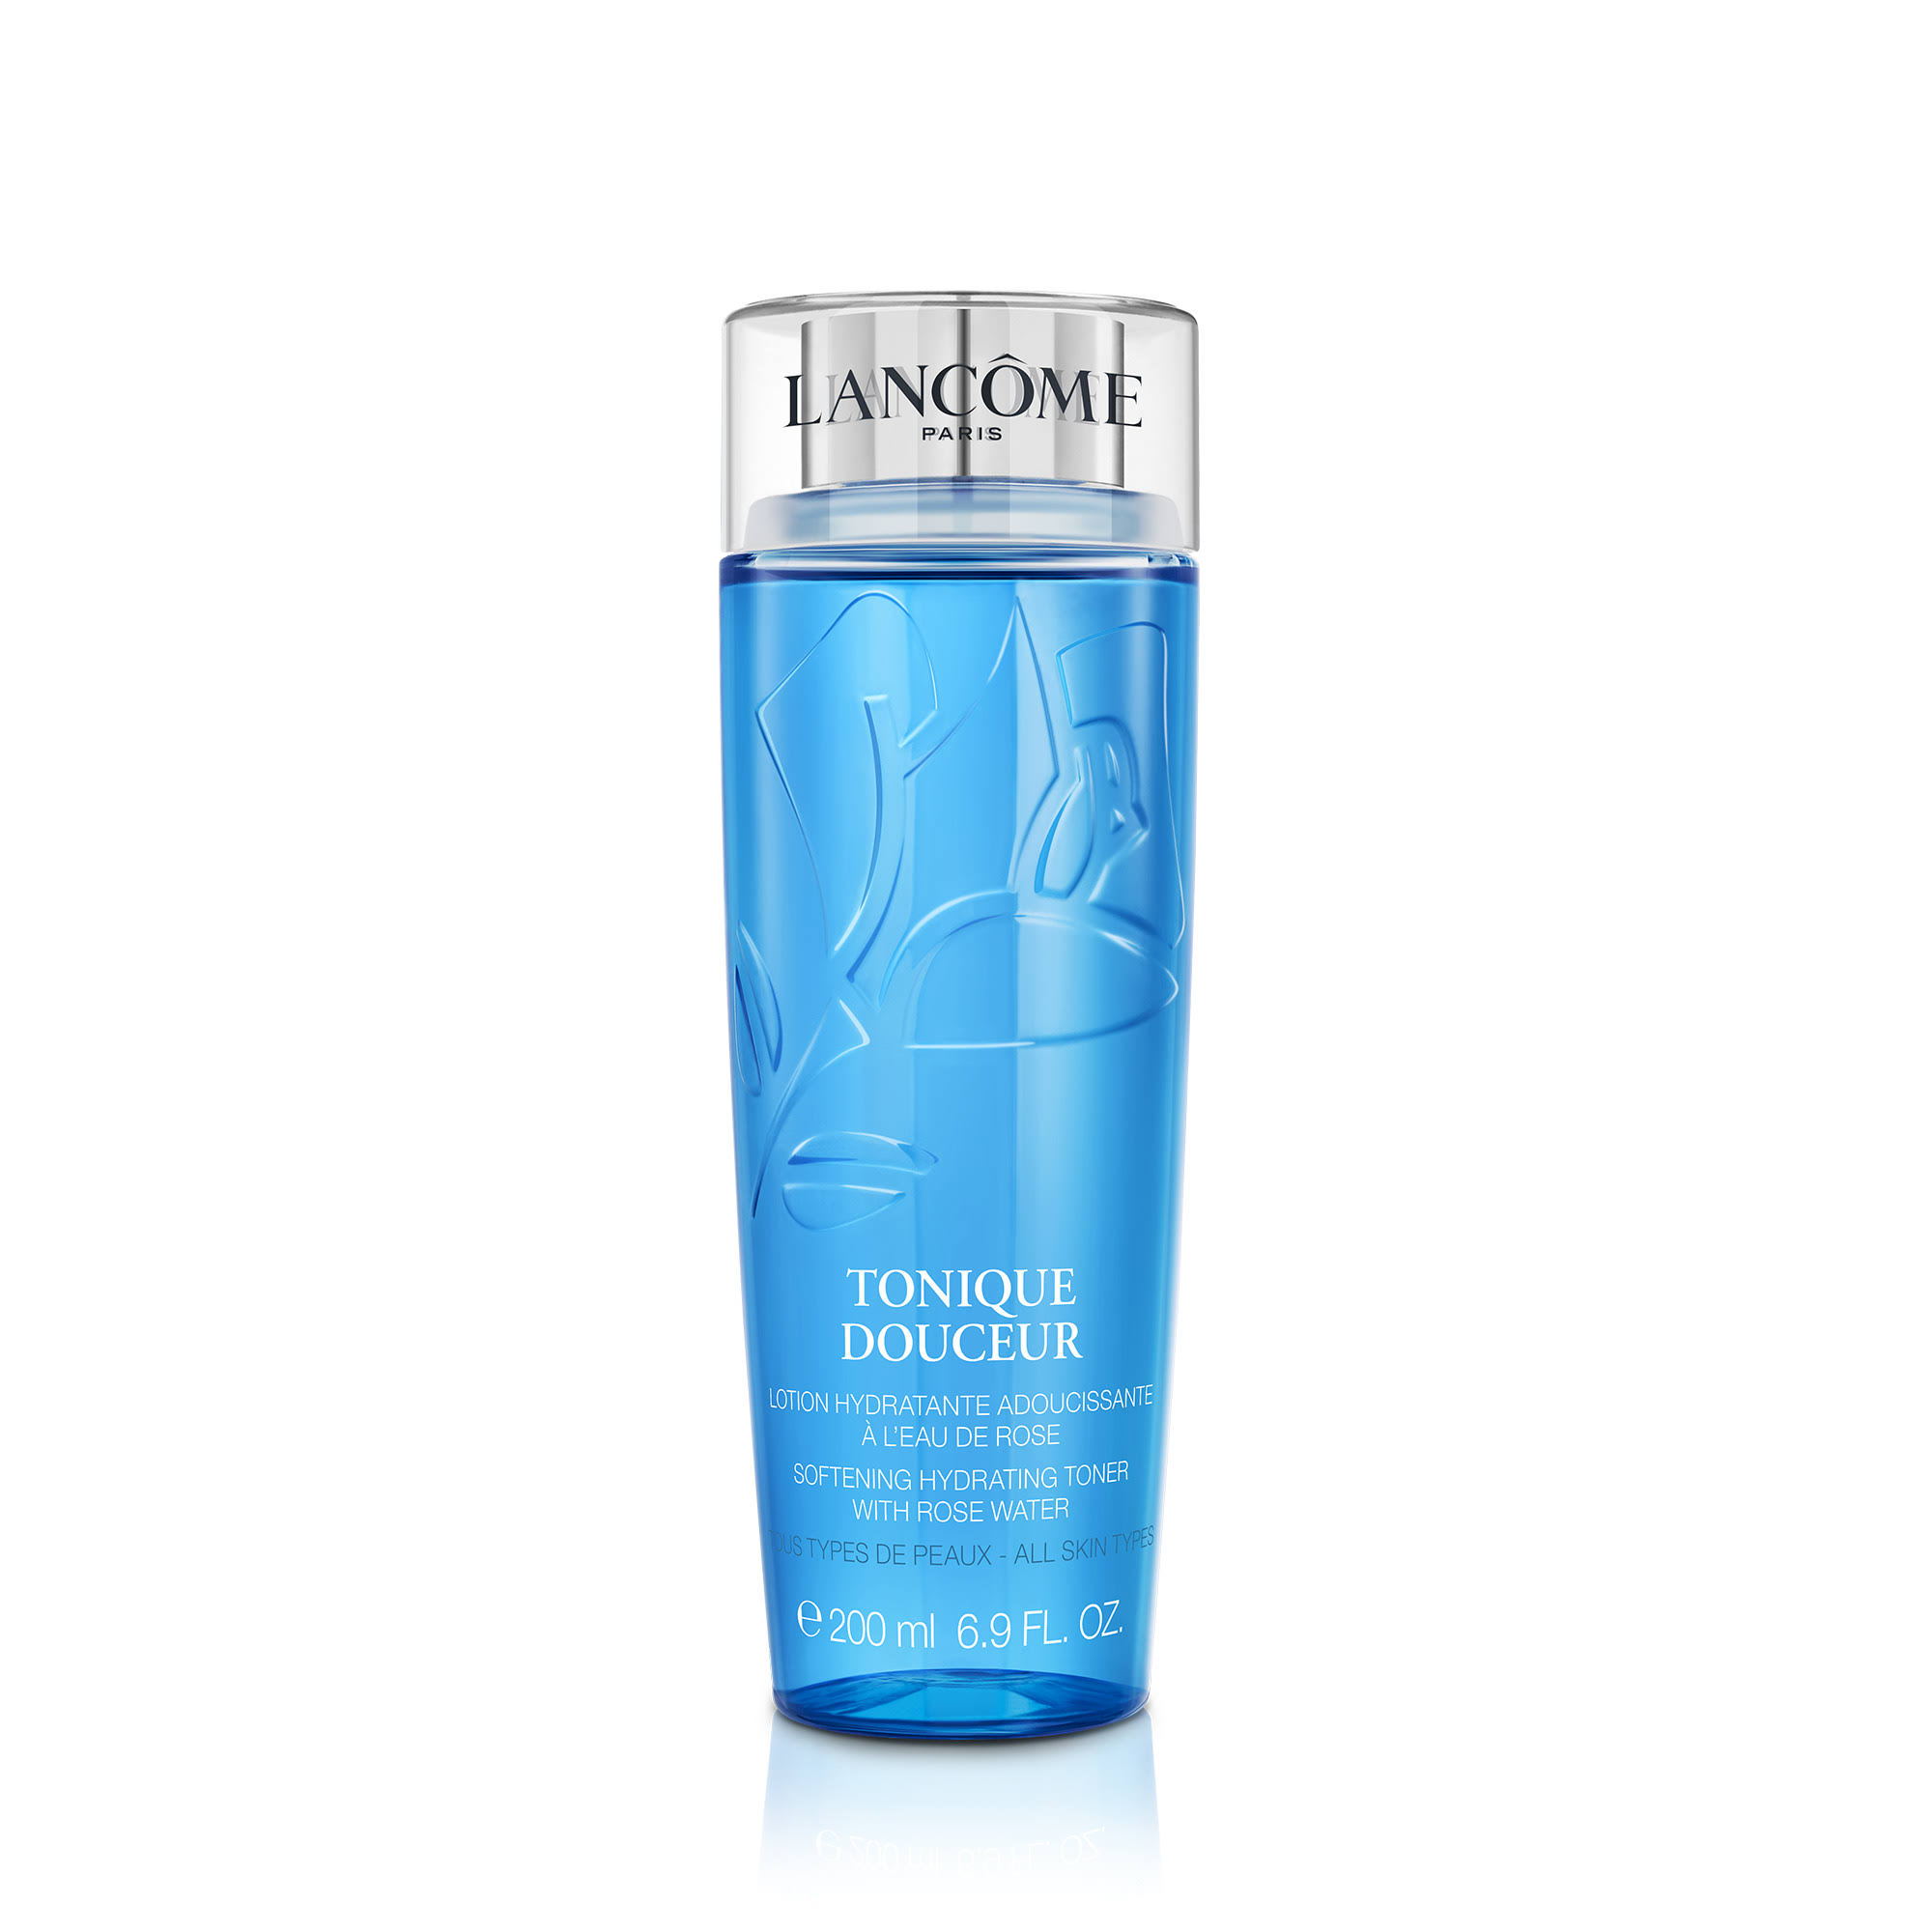 Lancome Tonique Douceur Alcohol-Free Freshener - 200ml